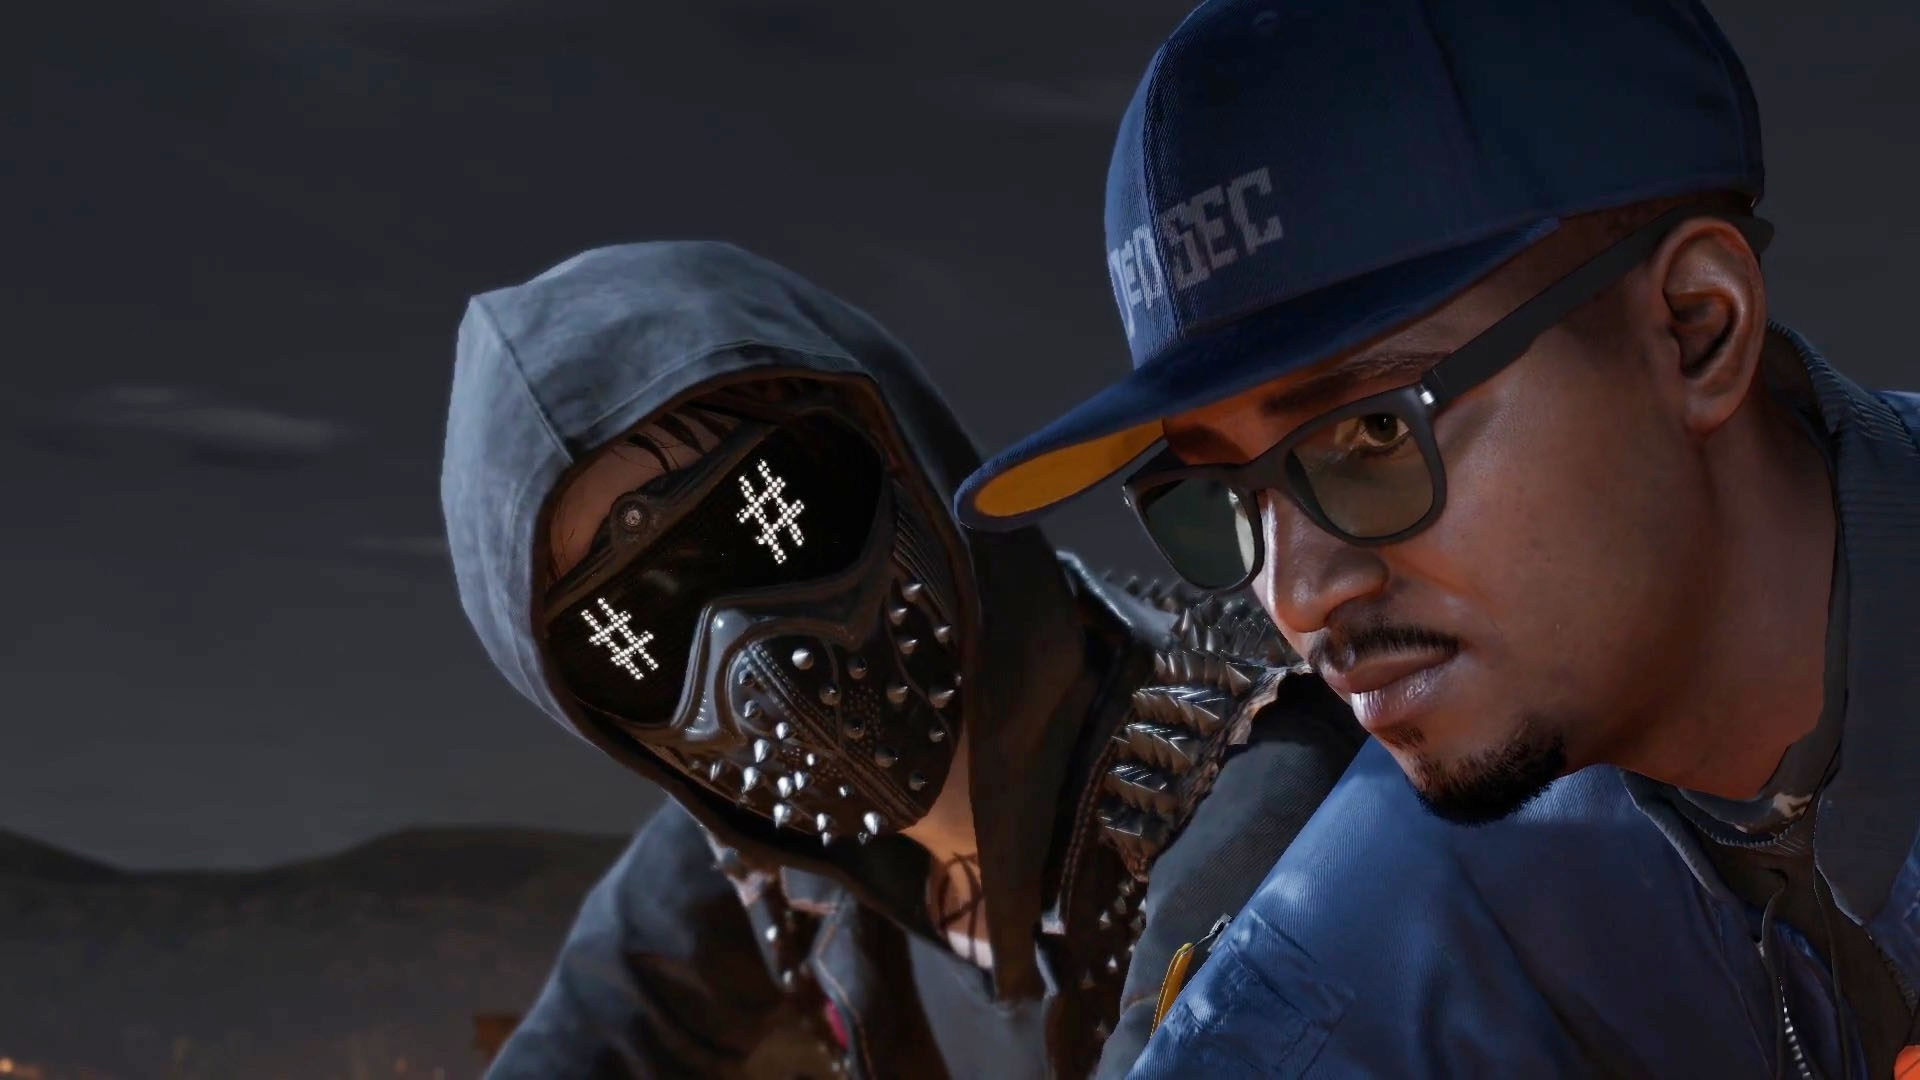 Watch Dogs  Dedsec Research Locations Xbox One